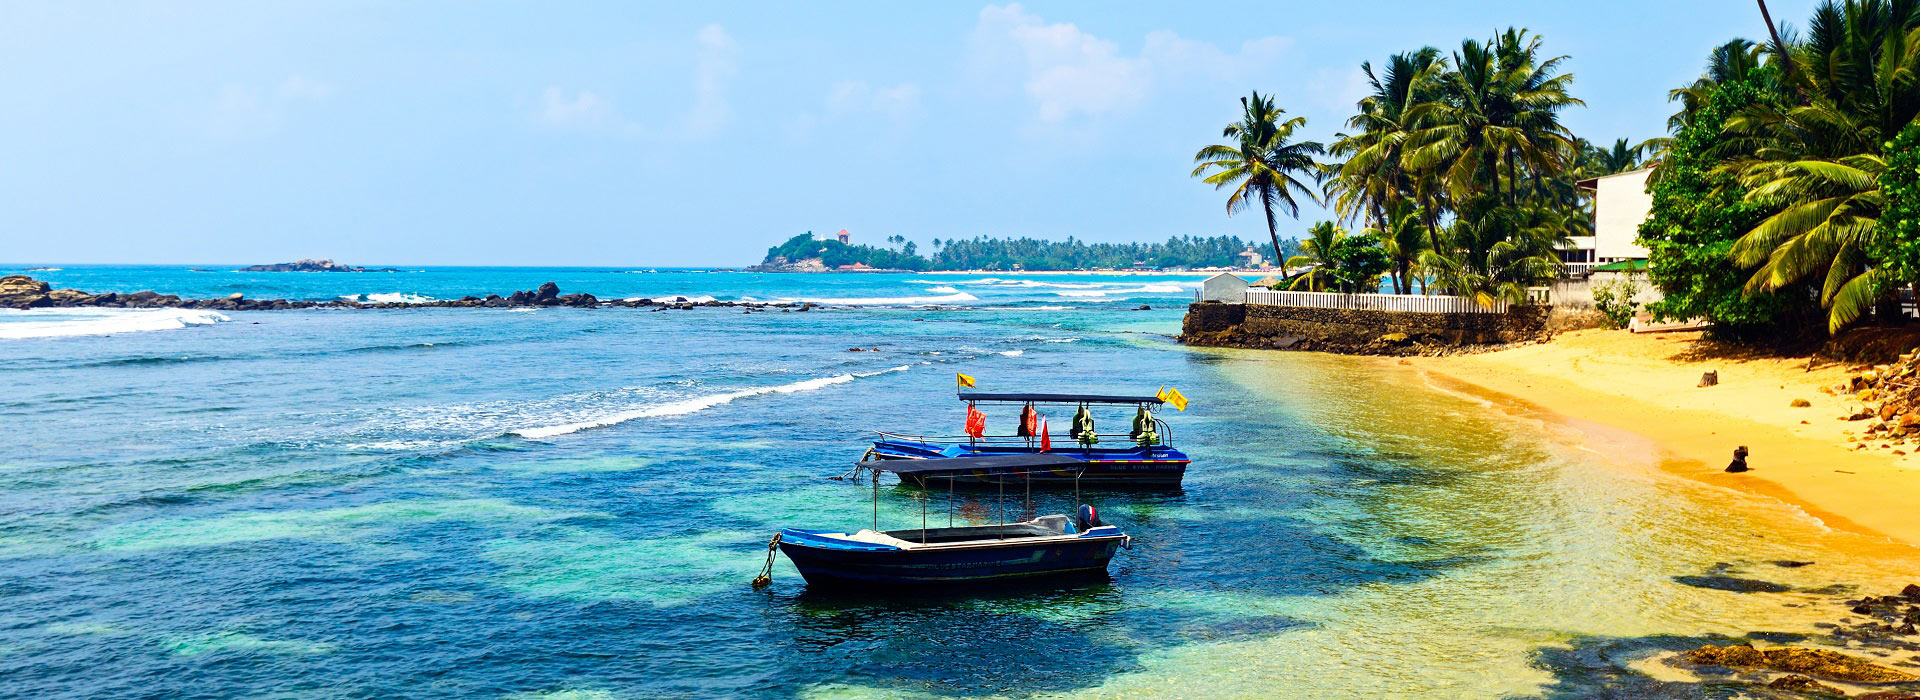 ocean_coast_of_sri_lanka